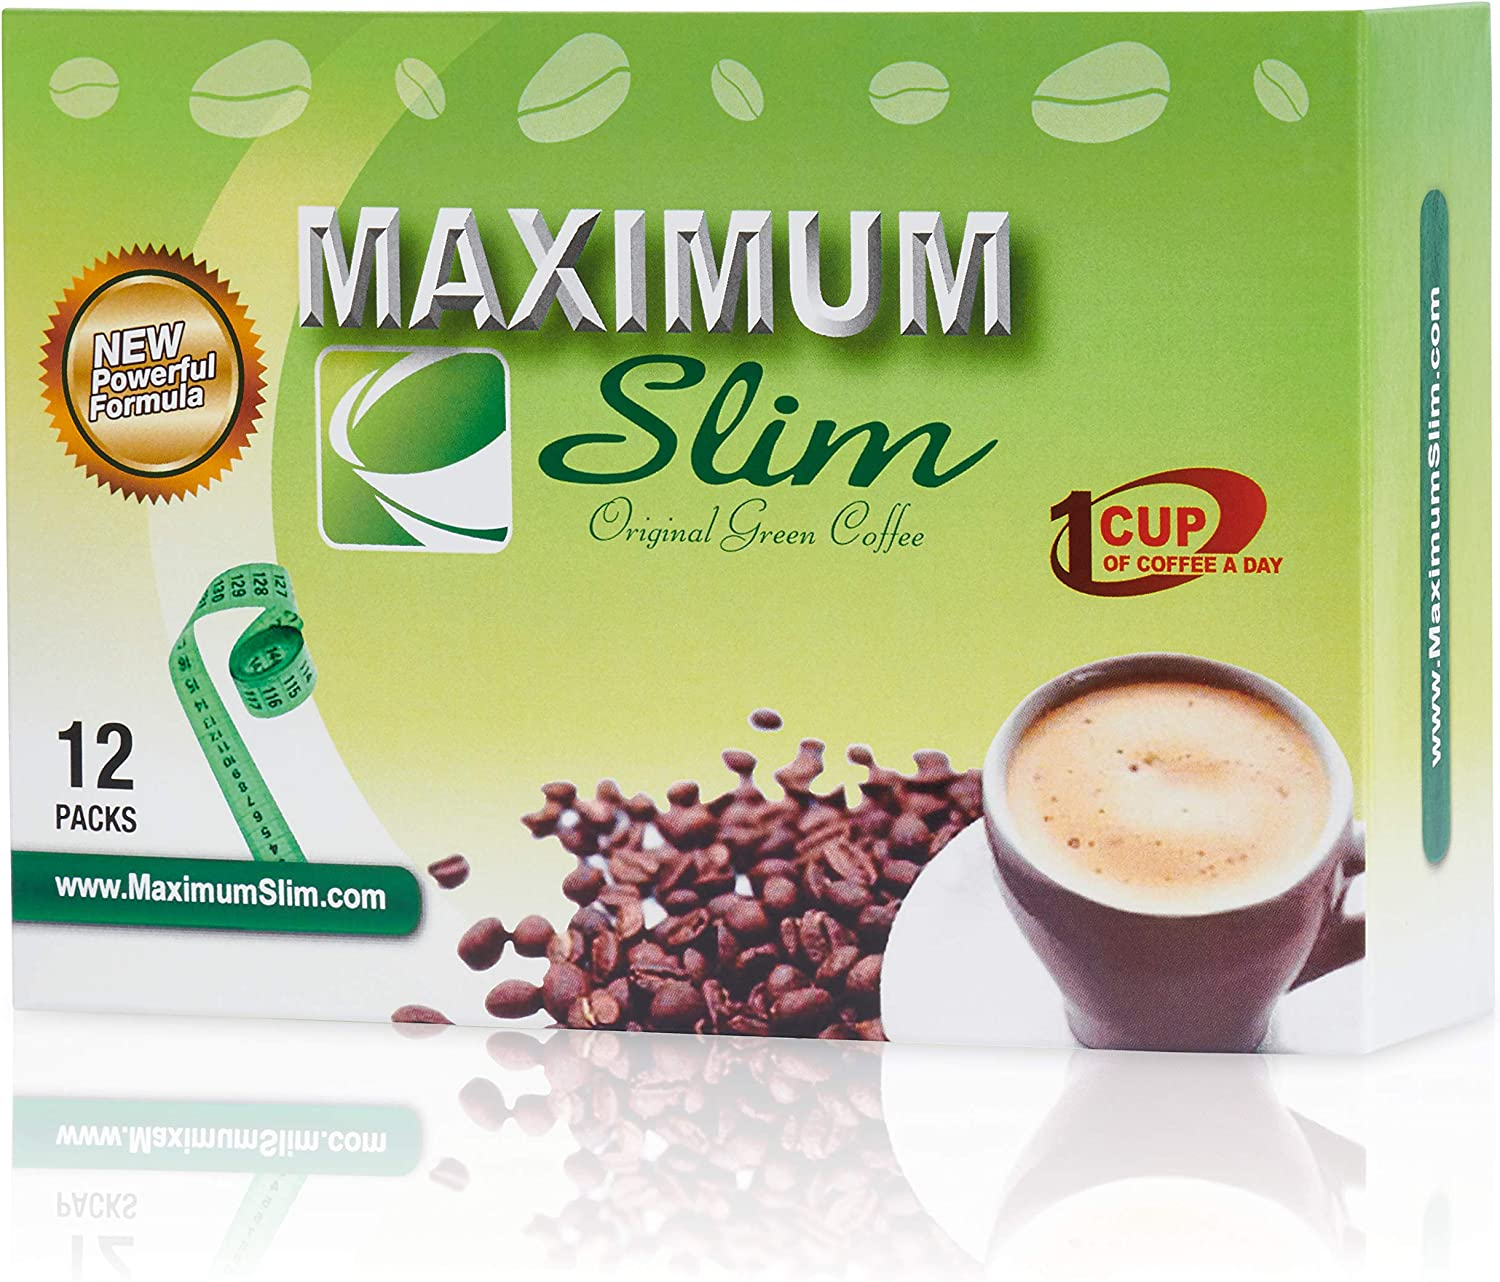 Amazon Com Premium Organic Coffee Boosts Your Metabolism Detoxes Your Body Controls Your Appetite Effective Weight Loss Formula Has Original Green Coffee Natural Herbal Extracts Laxative Free 12 Health Personal